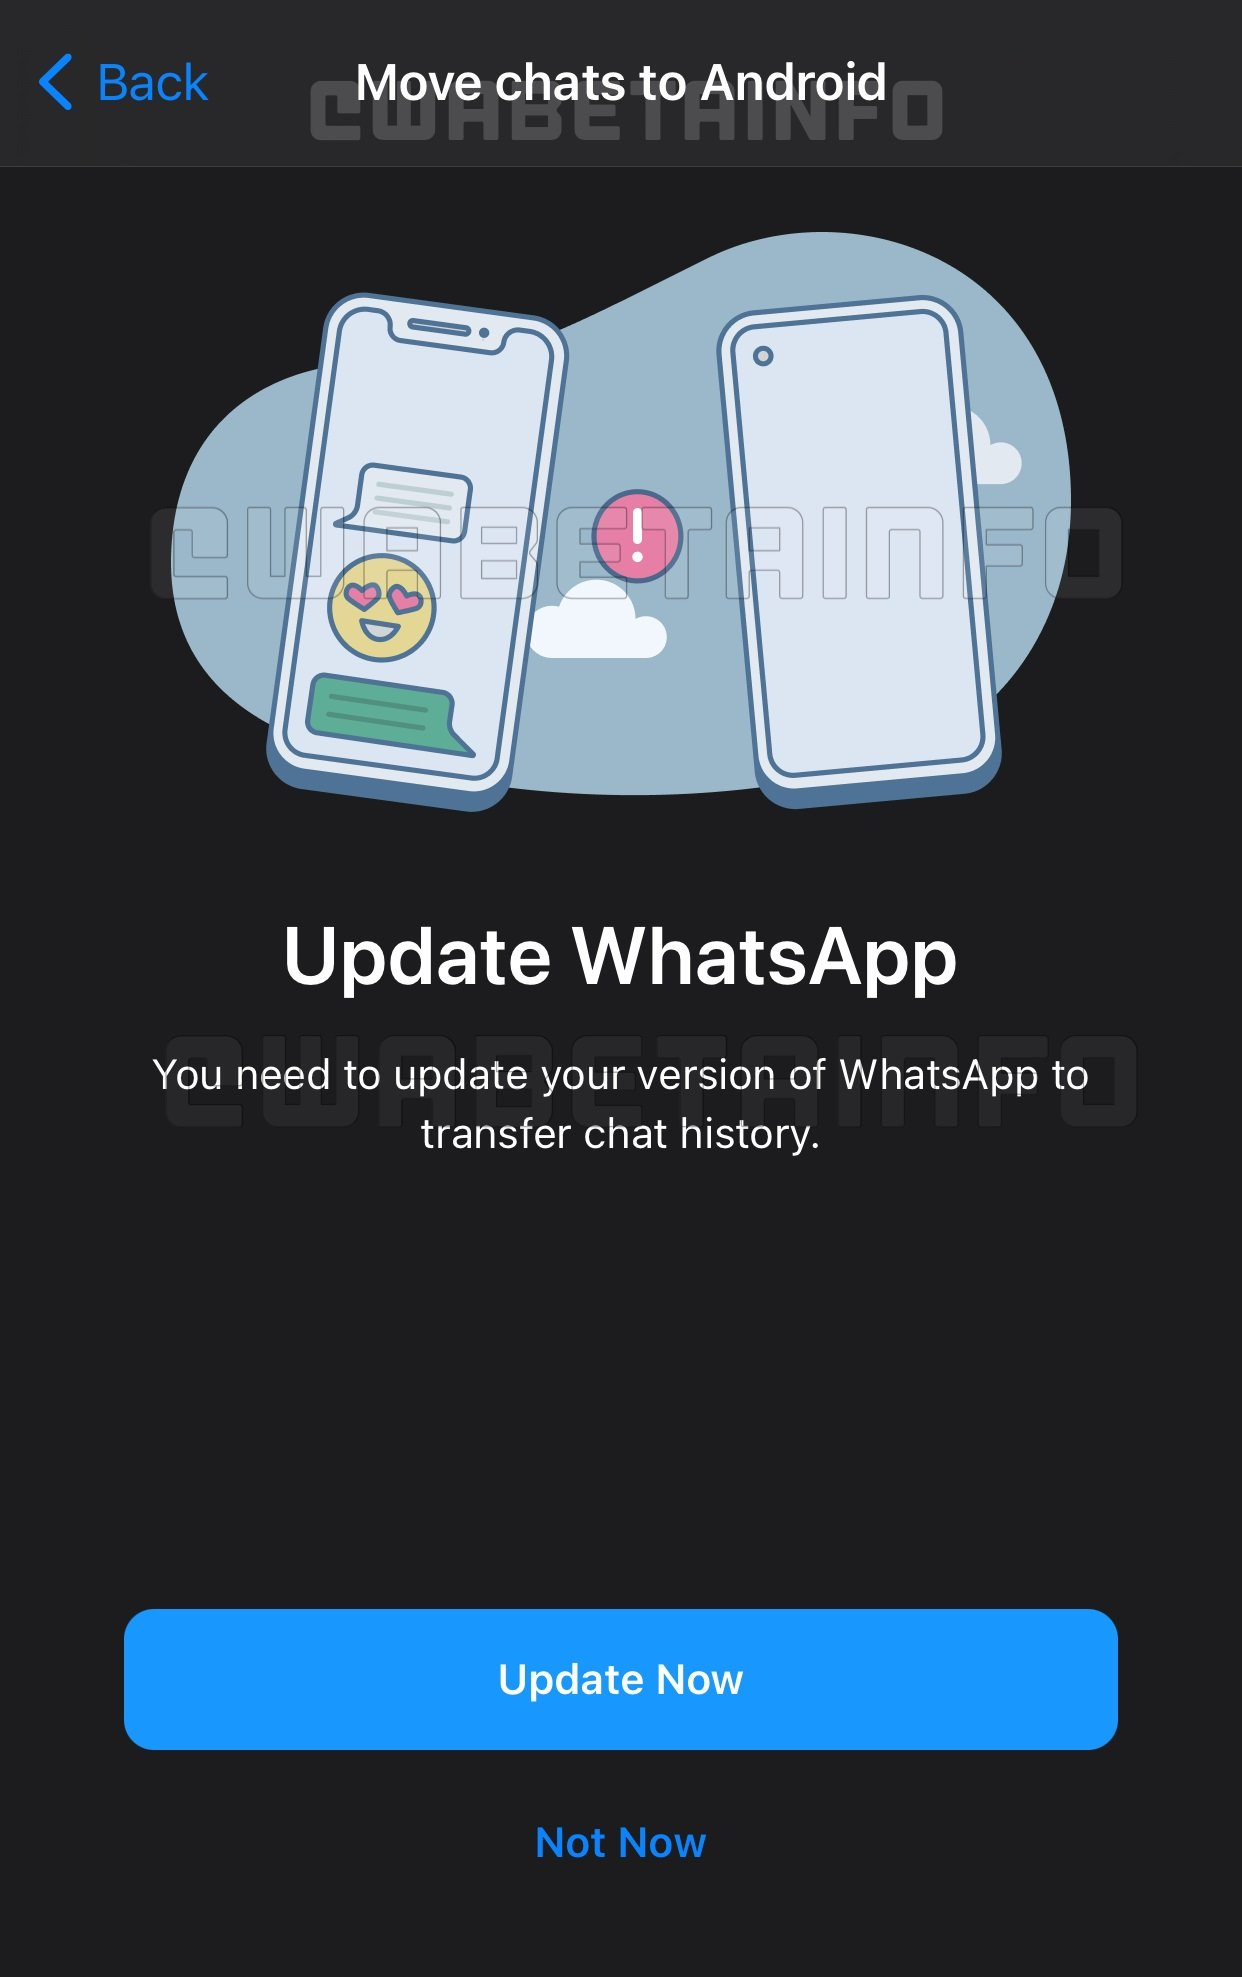 CHAT_MIGRATION_IOS-1